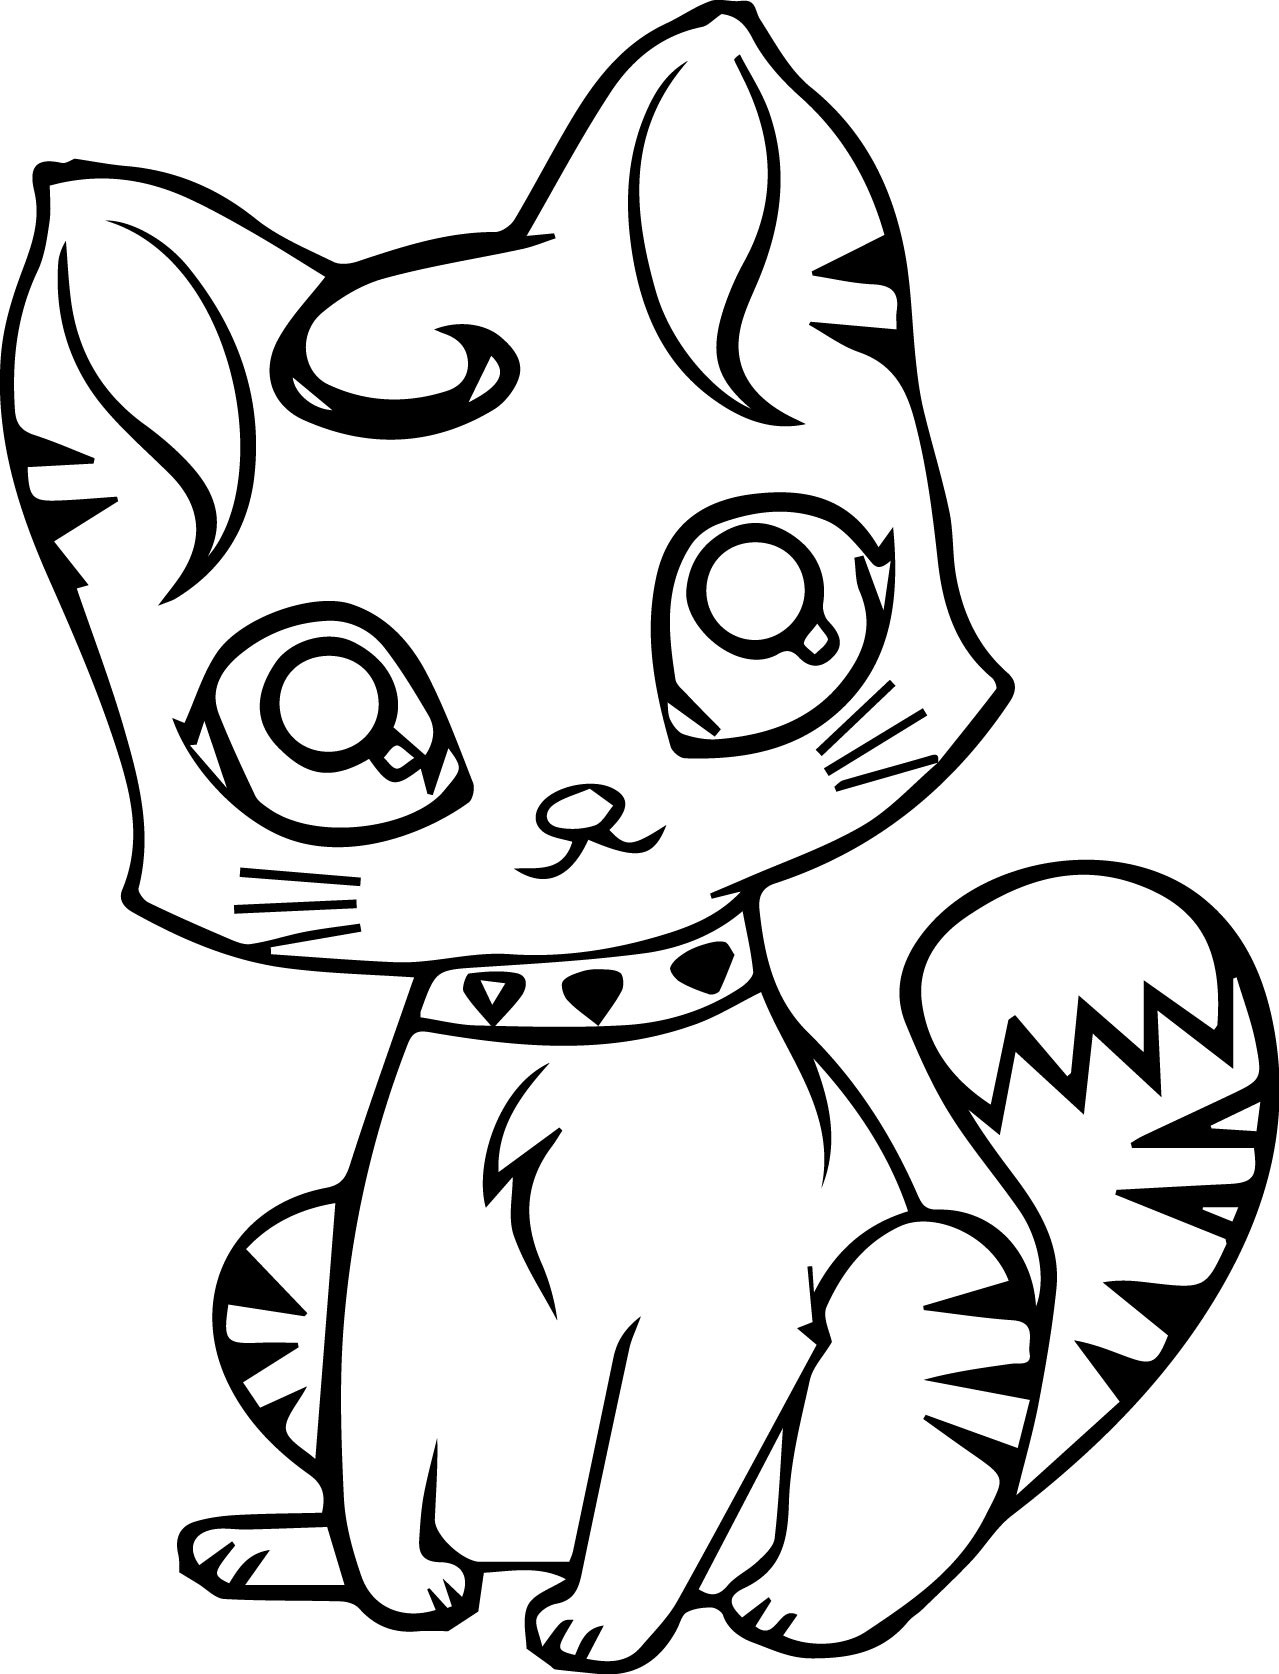 cat pictures to colour in cat coloring pages for adults best coloring pages for kids pictures in to cat colour